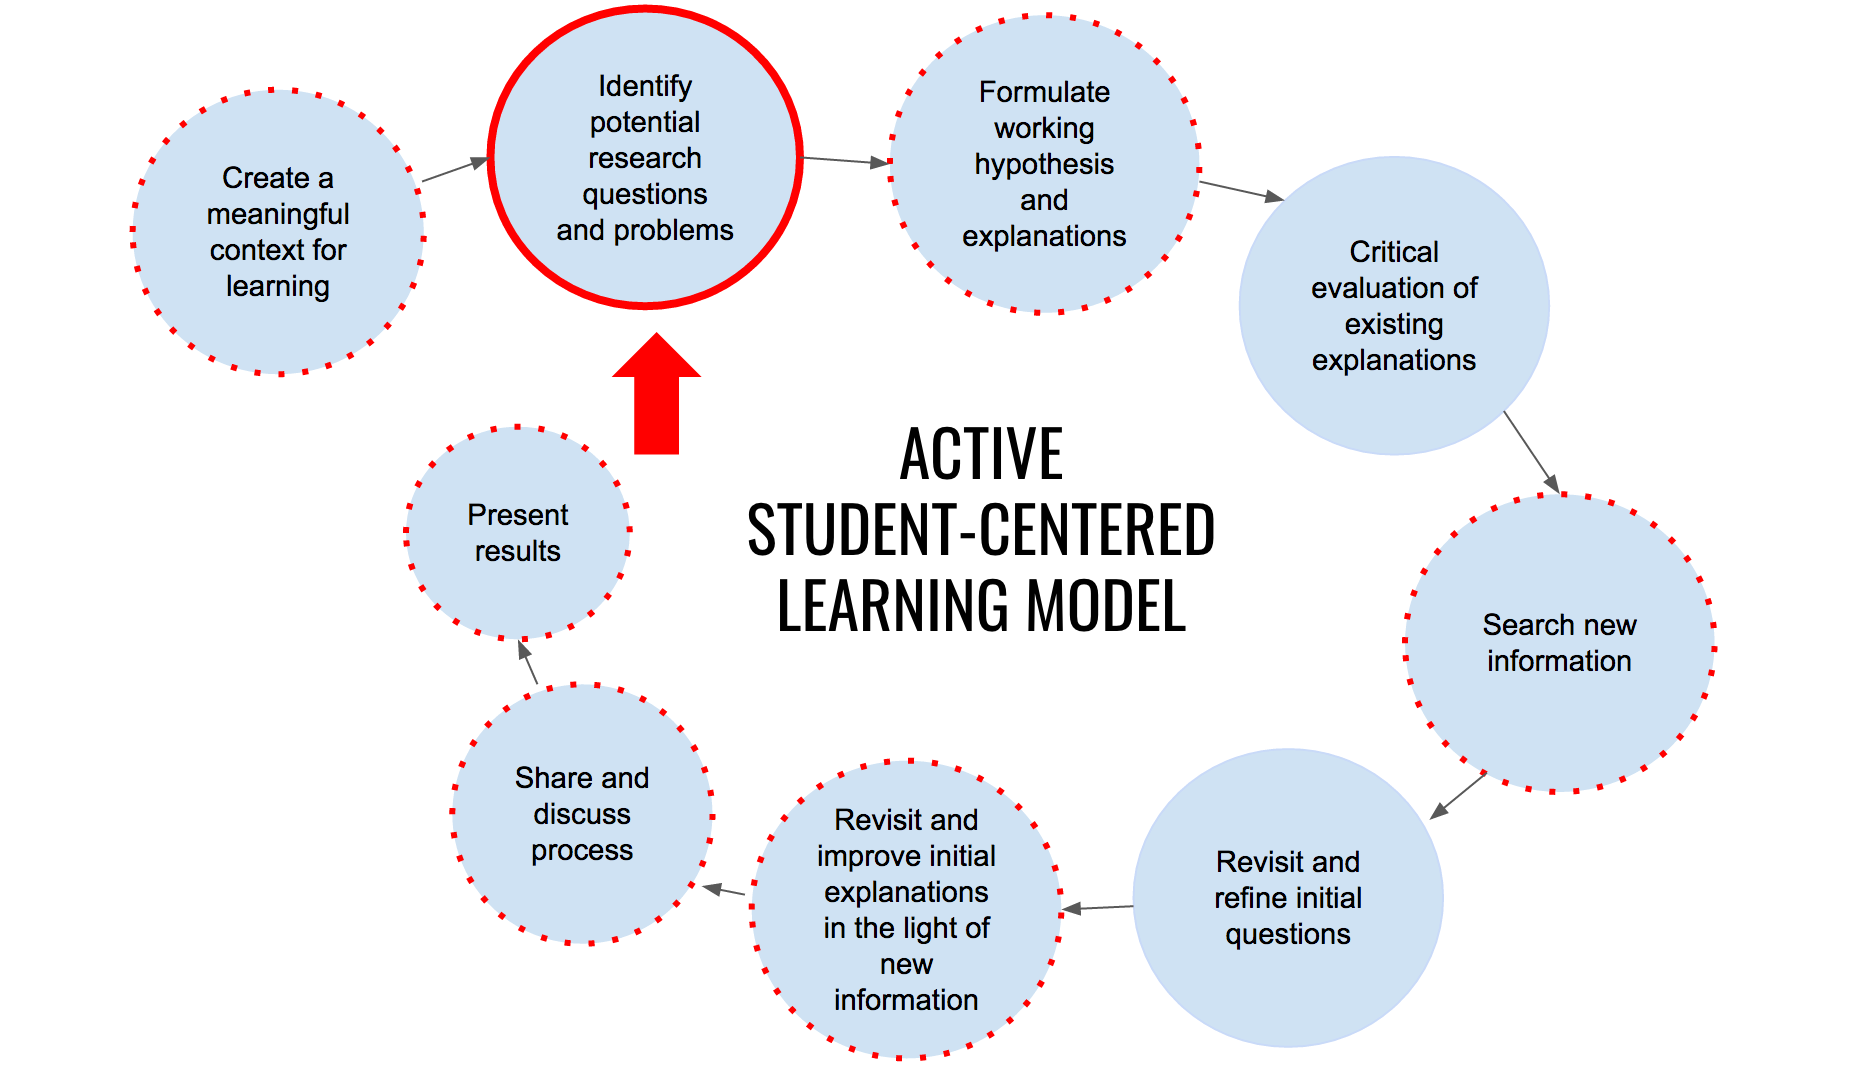 Active Student-Centered Learning Model